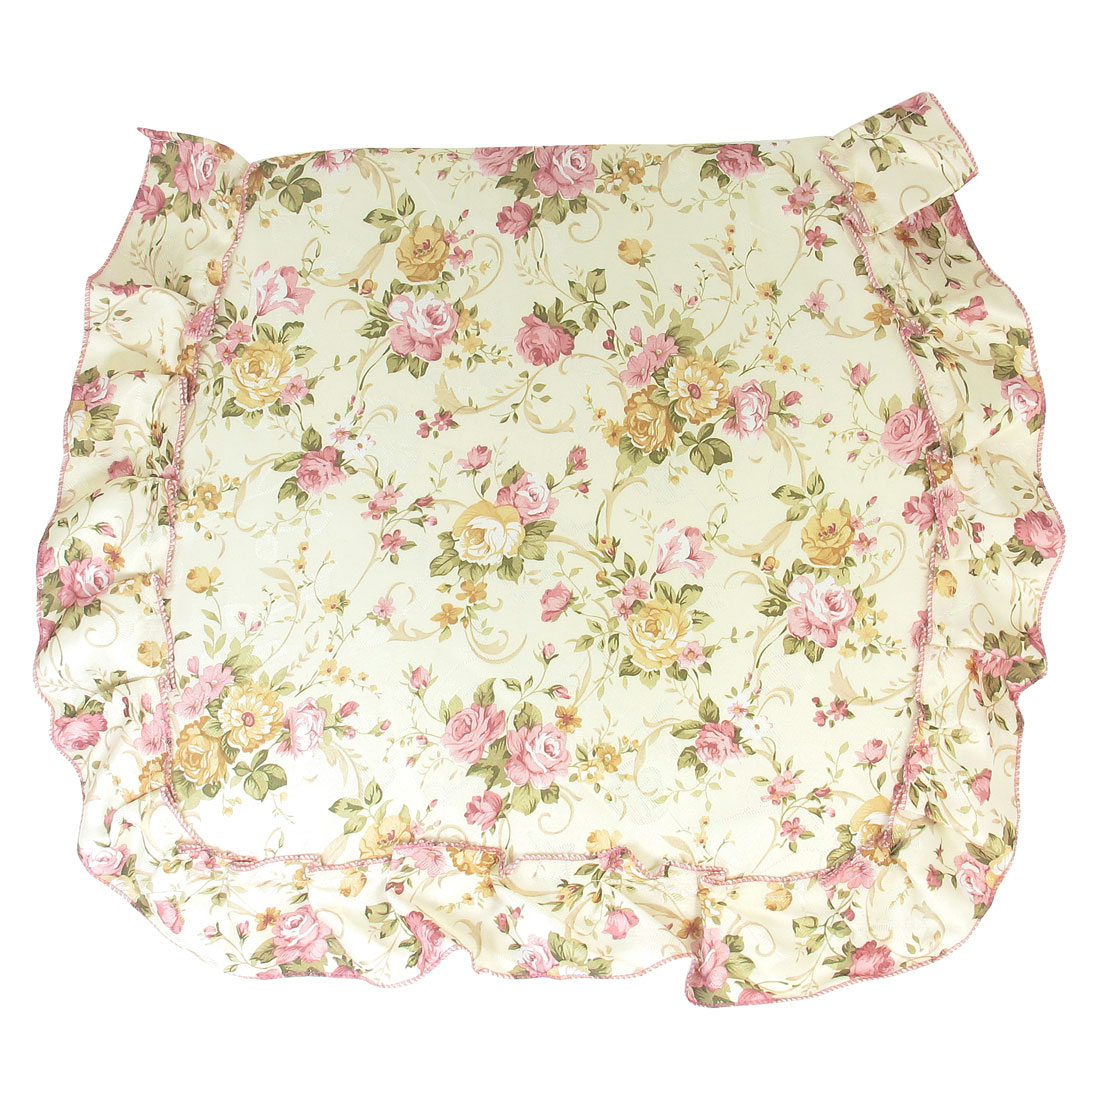 Assorted Color Flower Pattern Zip Closure Fabric Sponge Seat Cushion